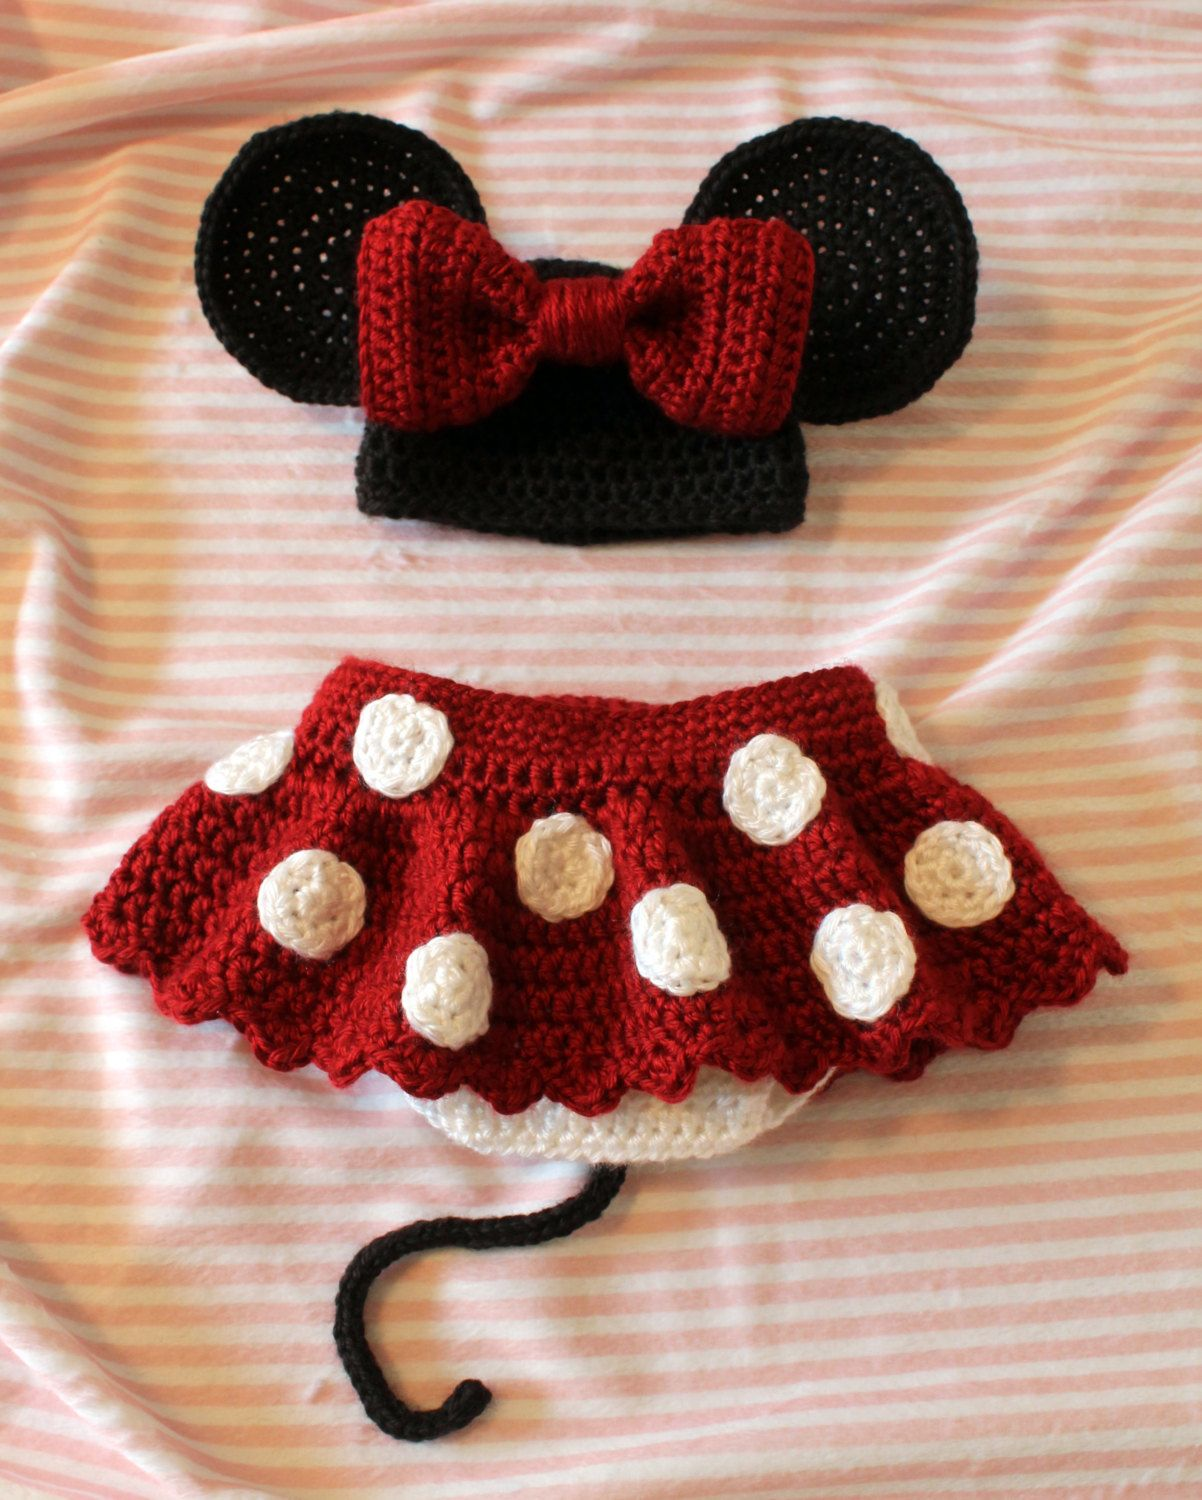 Crochet newborn minnie mouse outfit photo prop 50 httpswww crochet newborn minnie mouse outfit photo prop 50 httpsetsy bankloansurffo Choice Image